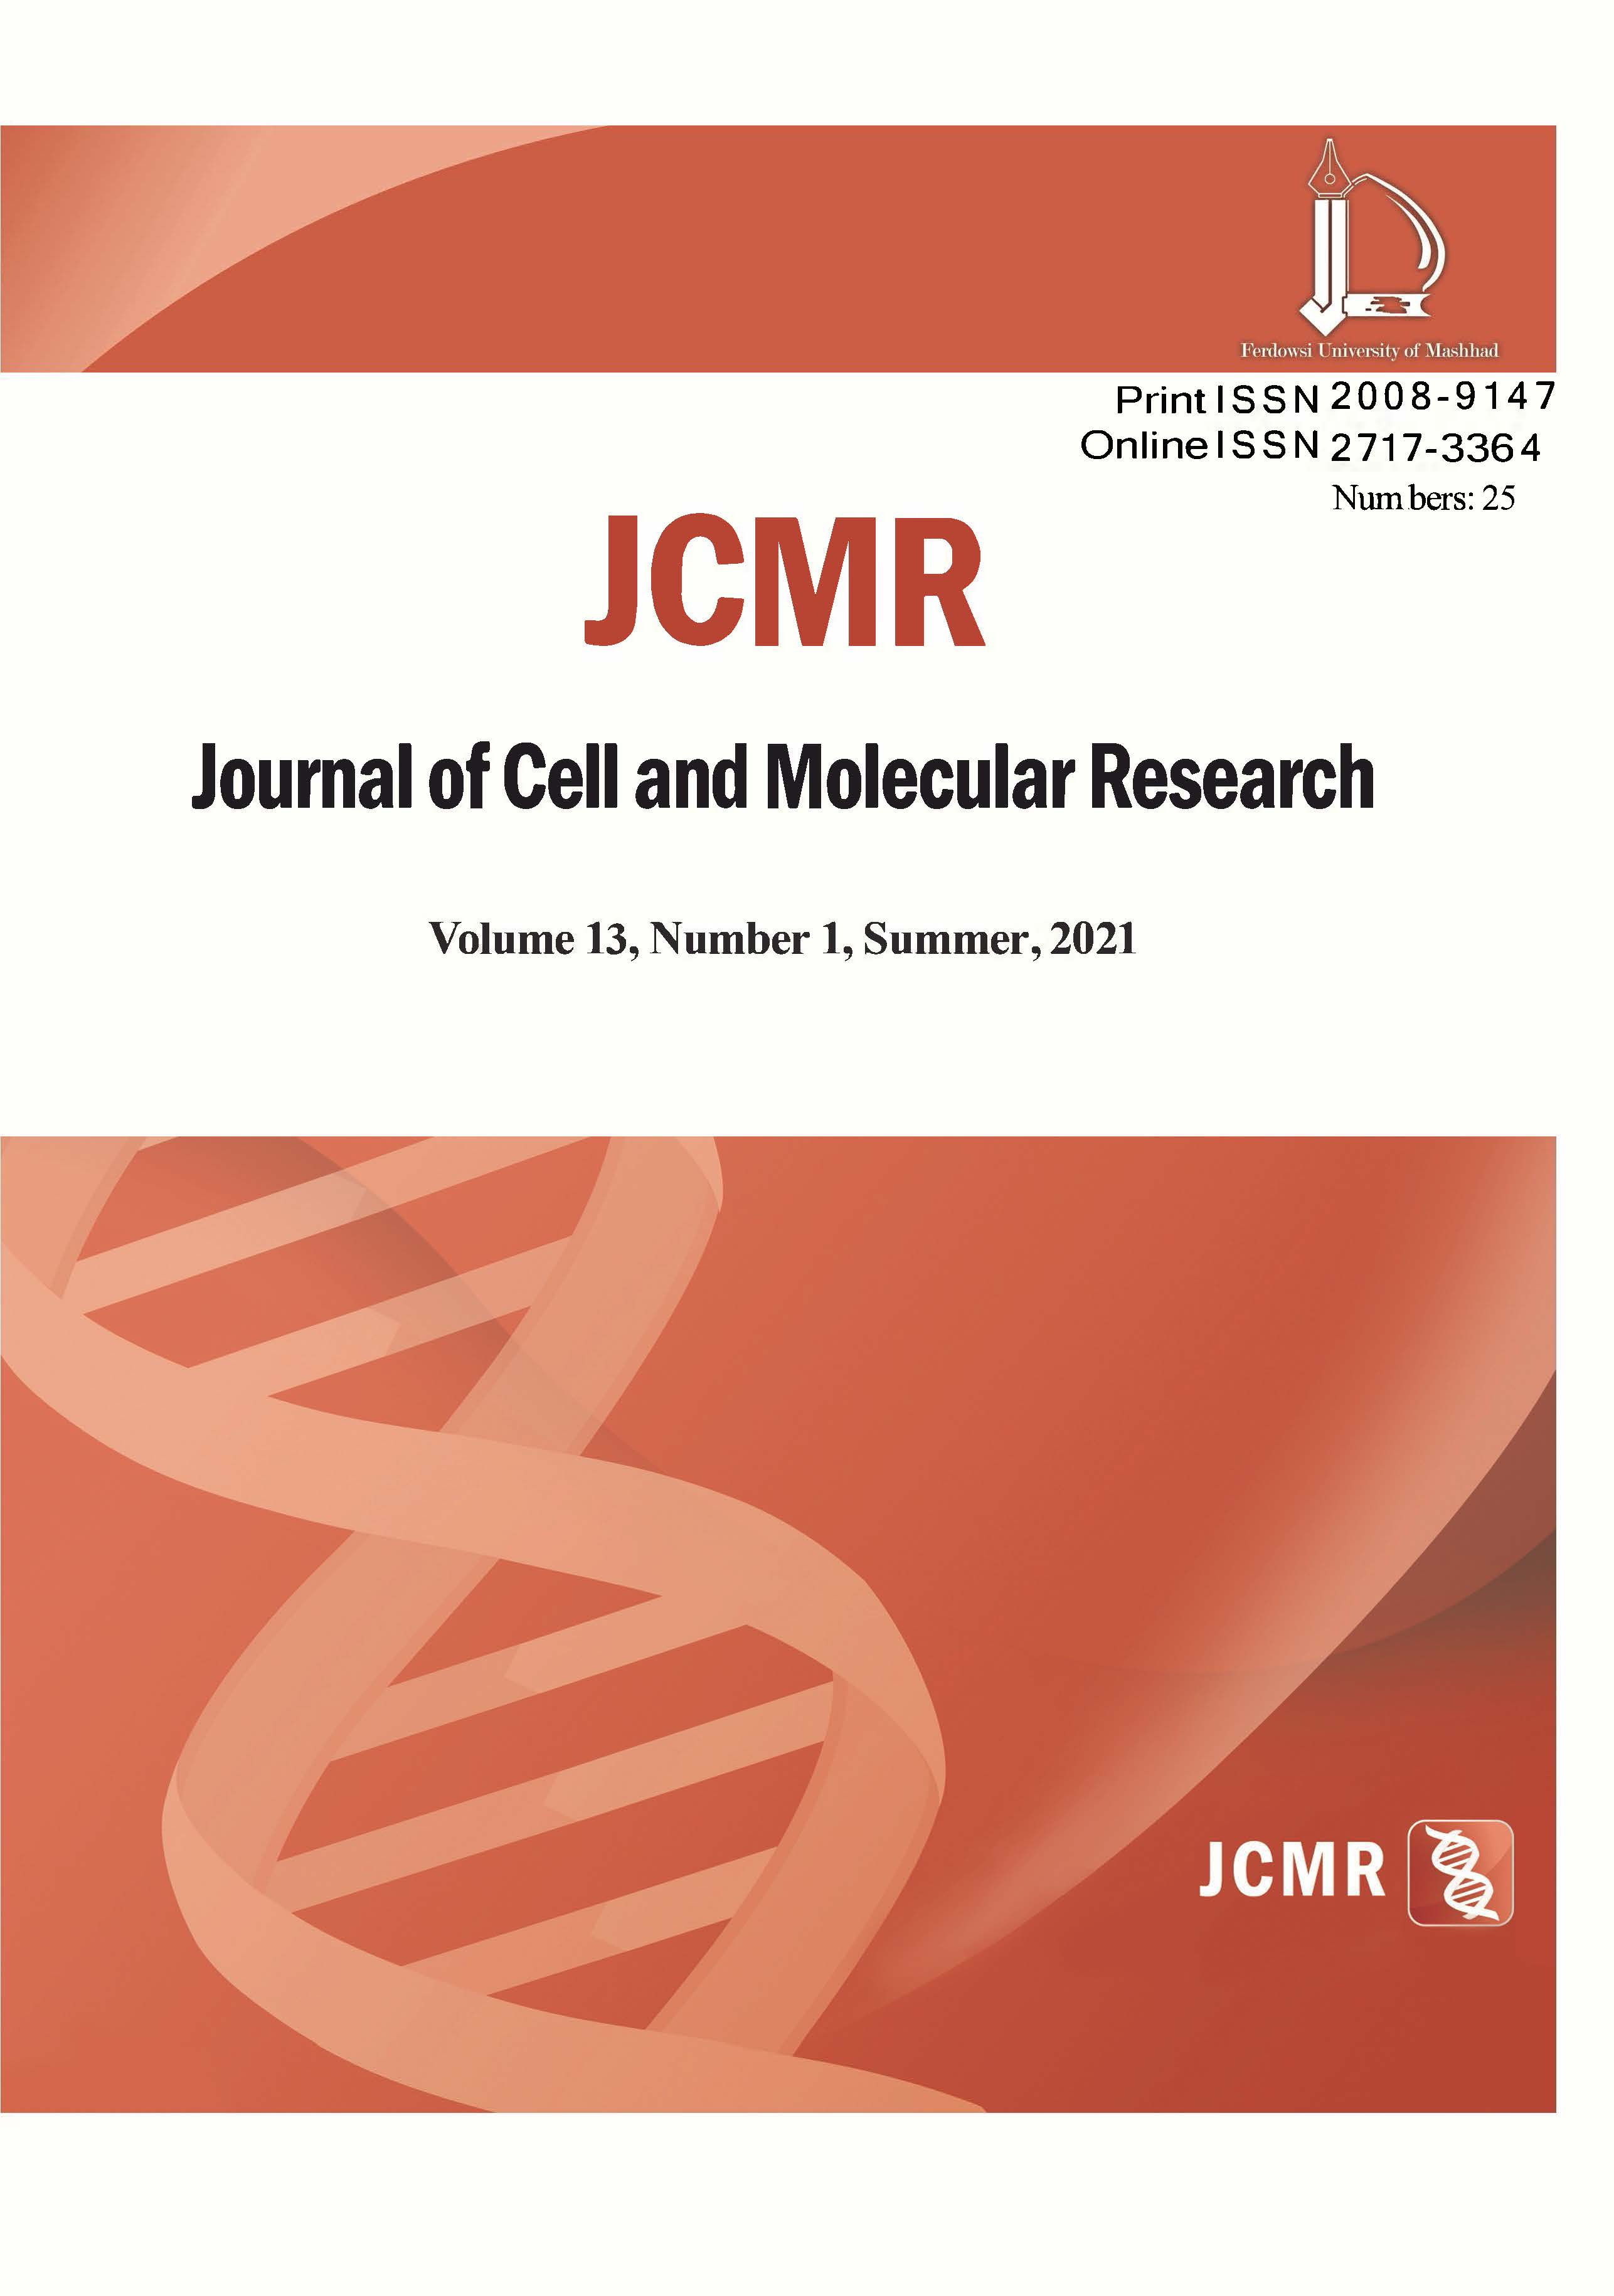 Journal of Cell and Molecular Research